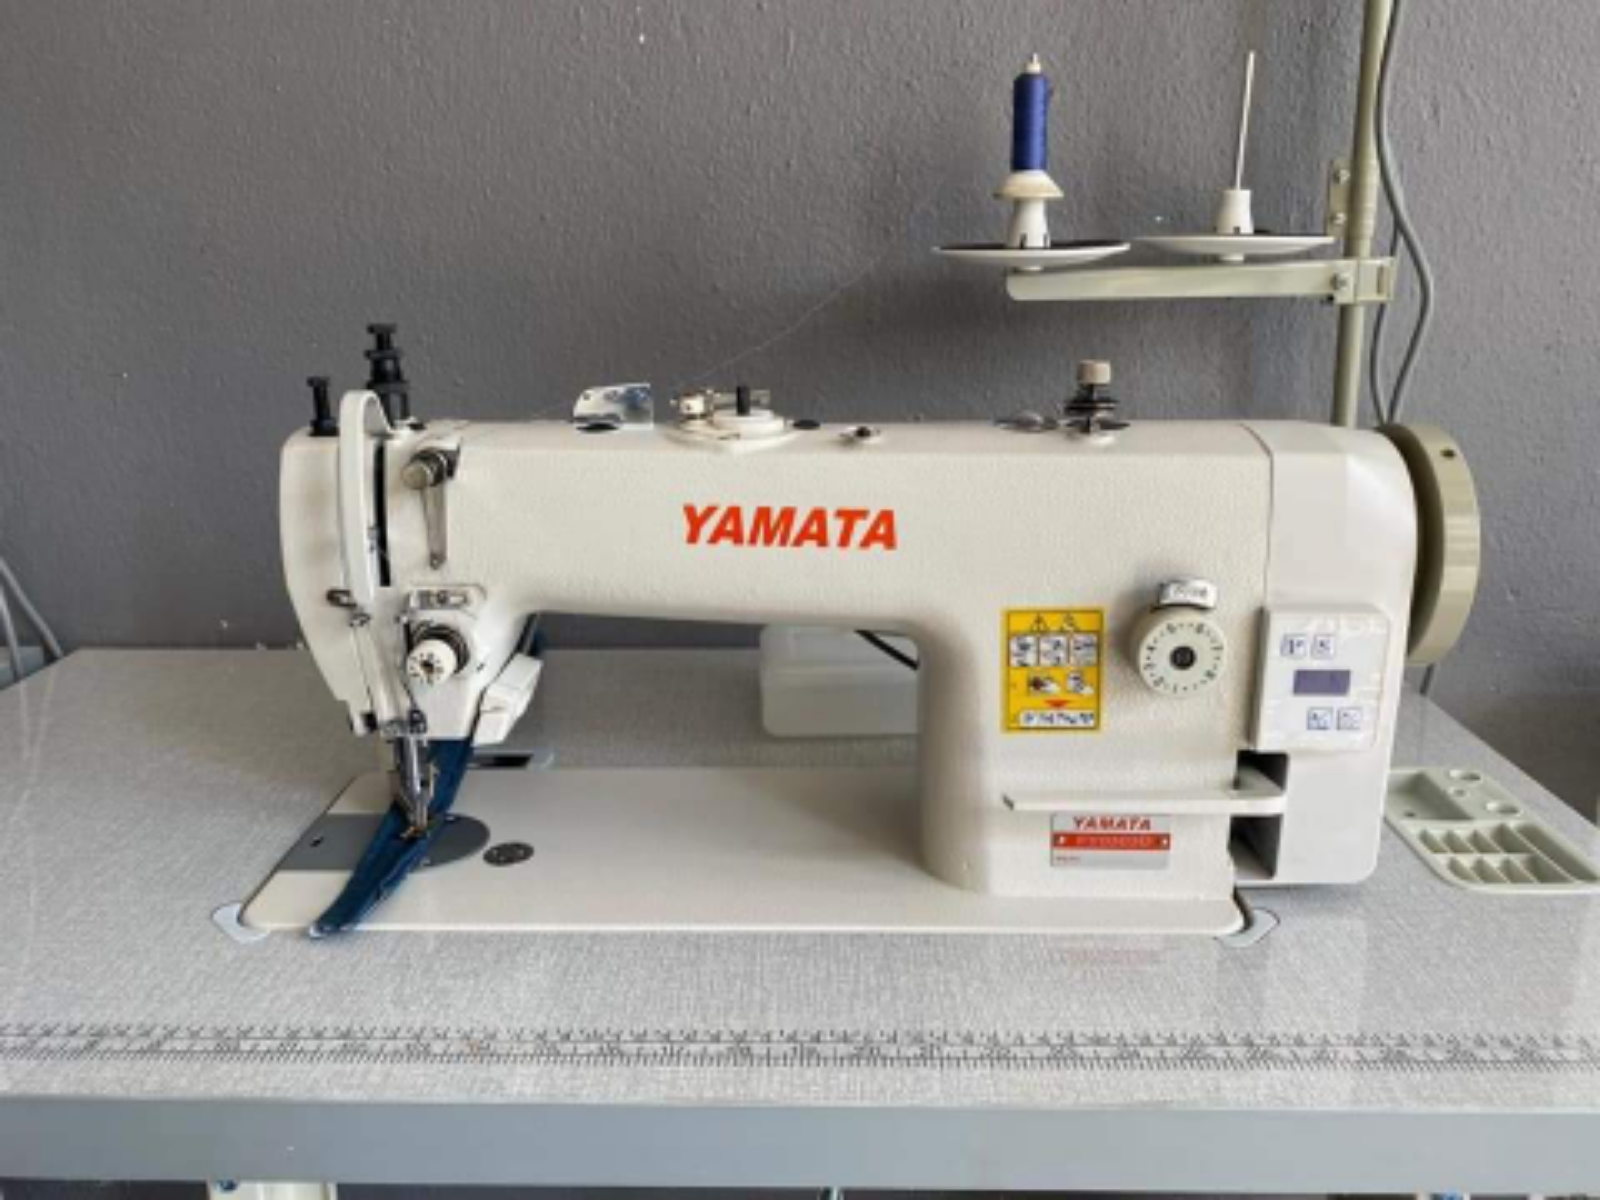 YAMATA INDUSTRIAL WORKING FOOT SEWING MACHINE